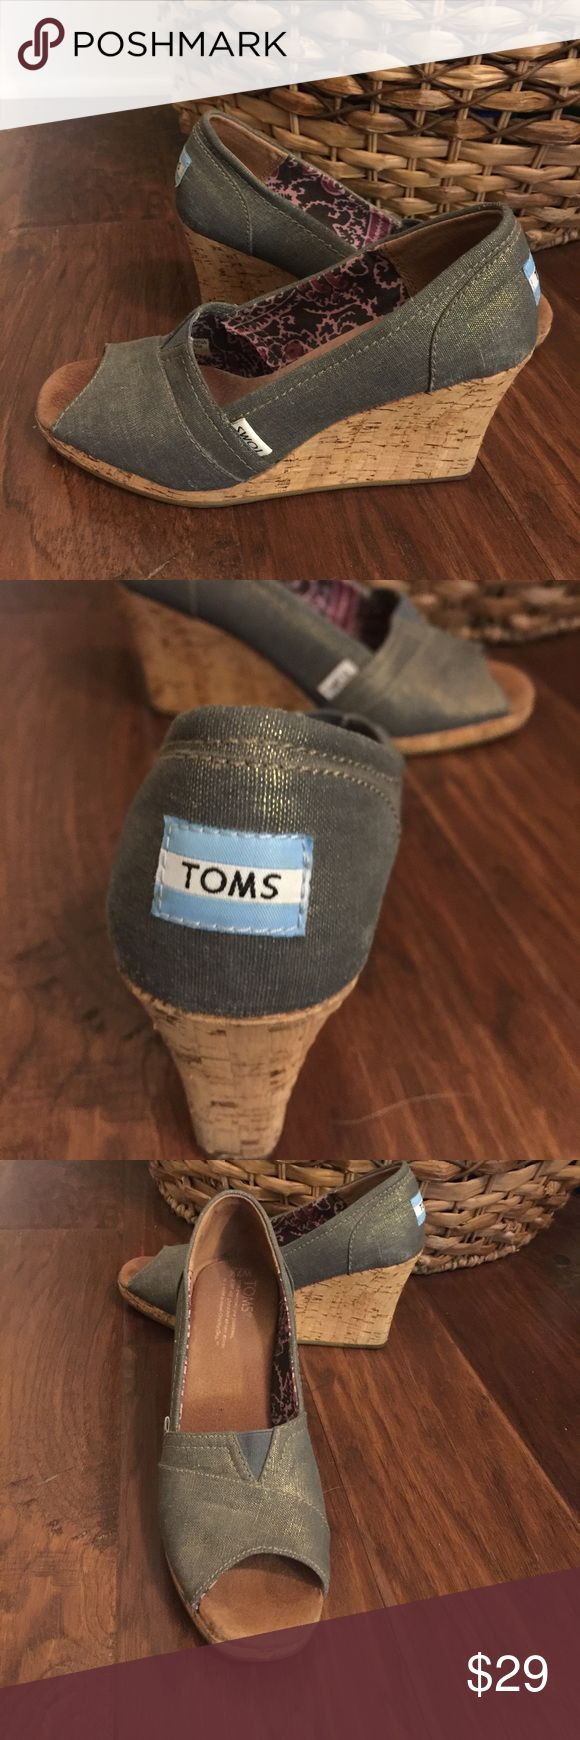 Tom's Classic Wedge, size 7 1/2 Tom'sClassic Cork Wedge, size 7 1/2,  color is Silver/Grey TOMS Shoes Wedges